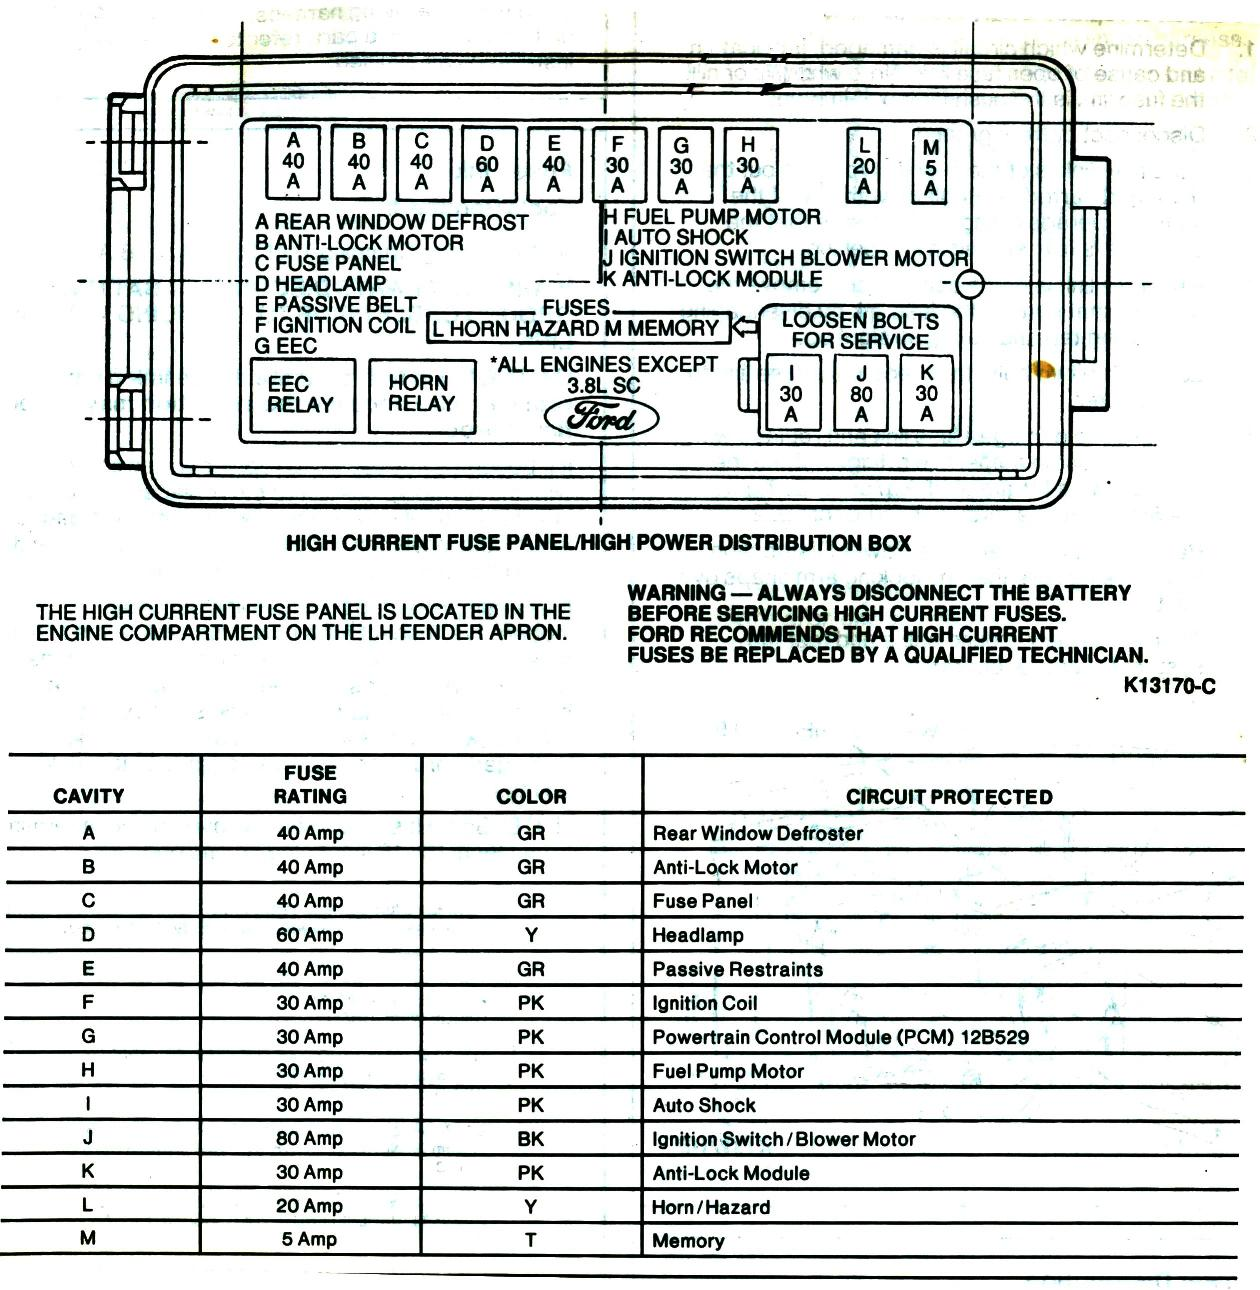 2005 ford taurus fuse box 2005 free engine image for 2002 taurus fuse box  2002 taurus fuse box